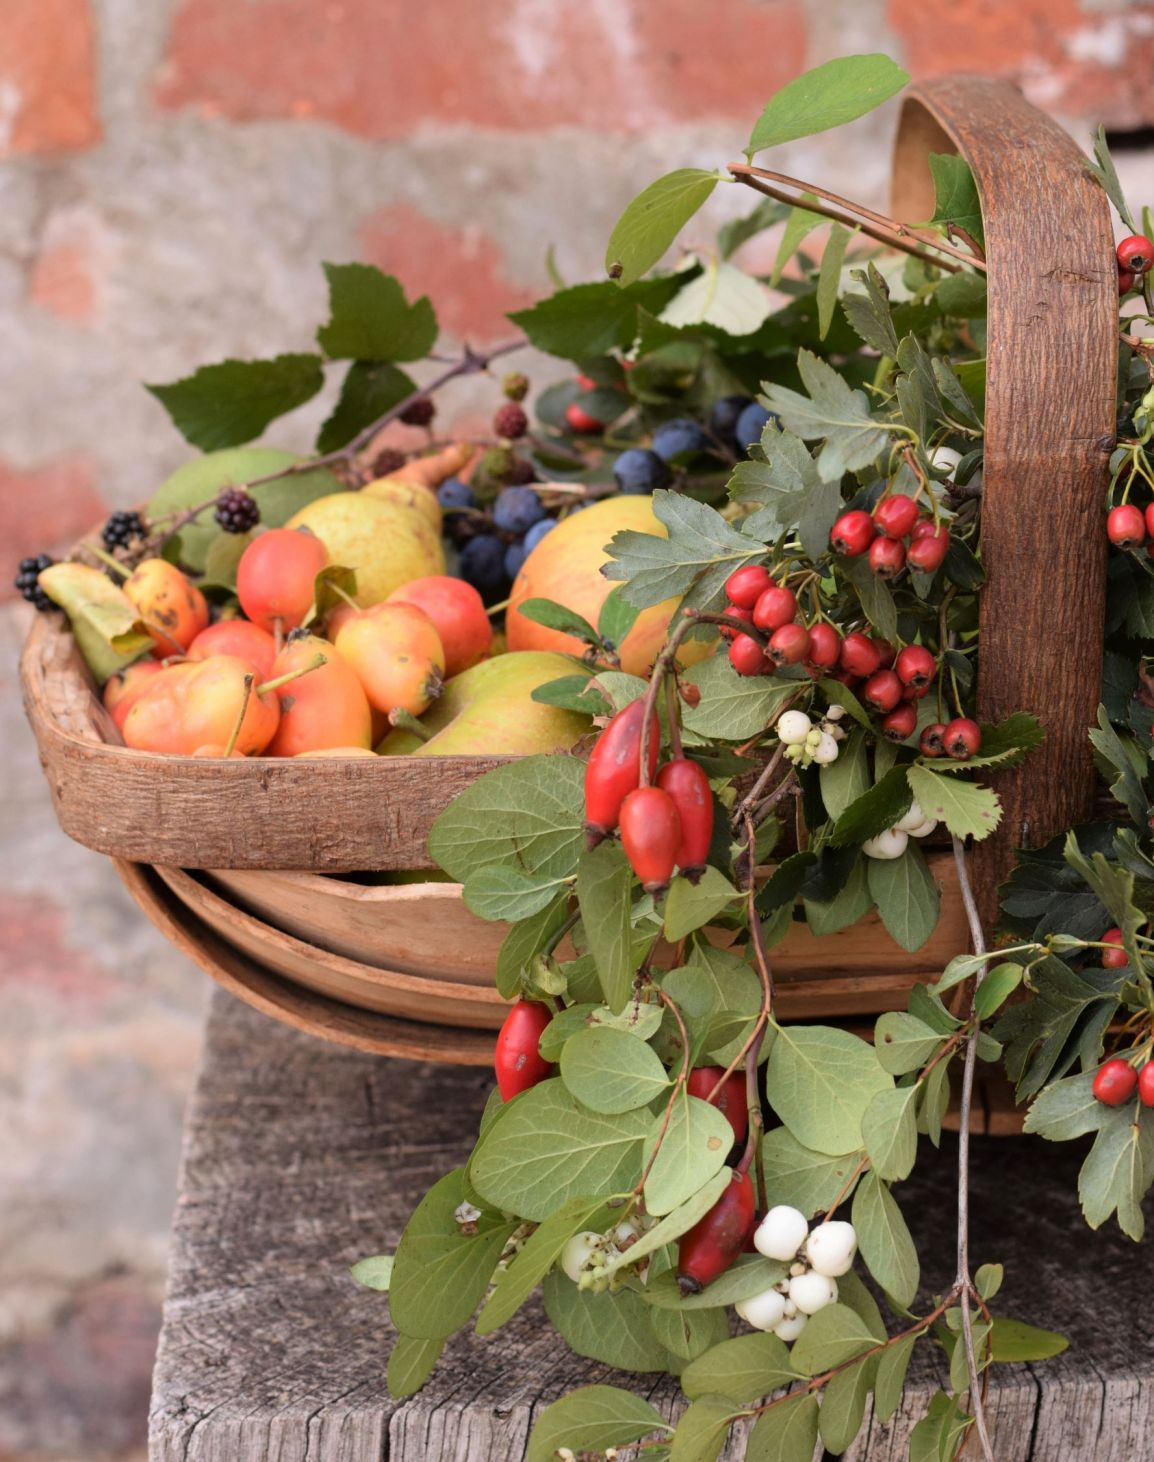 Wild fruits and berries in a trug